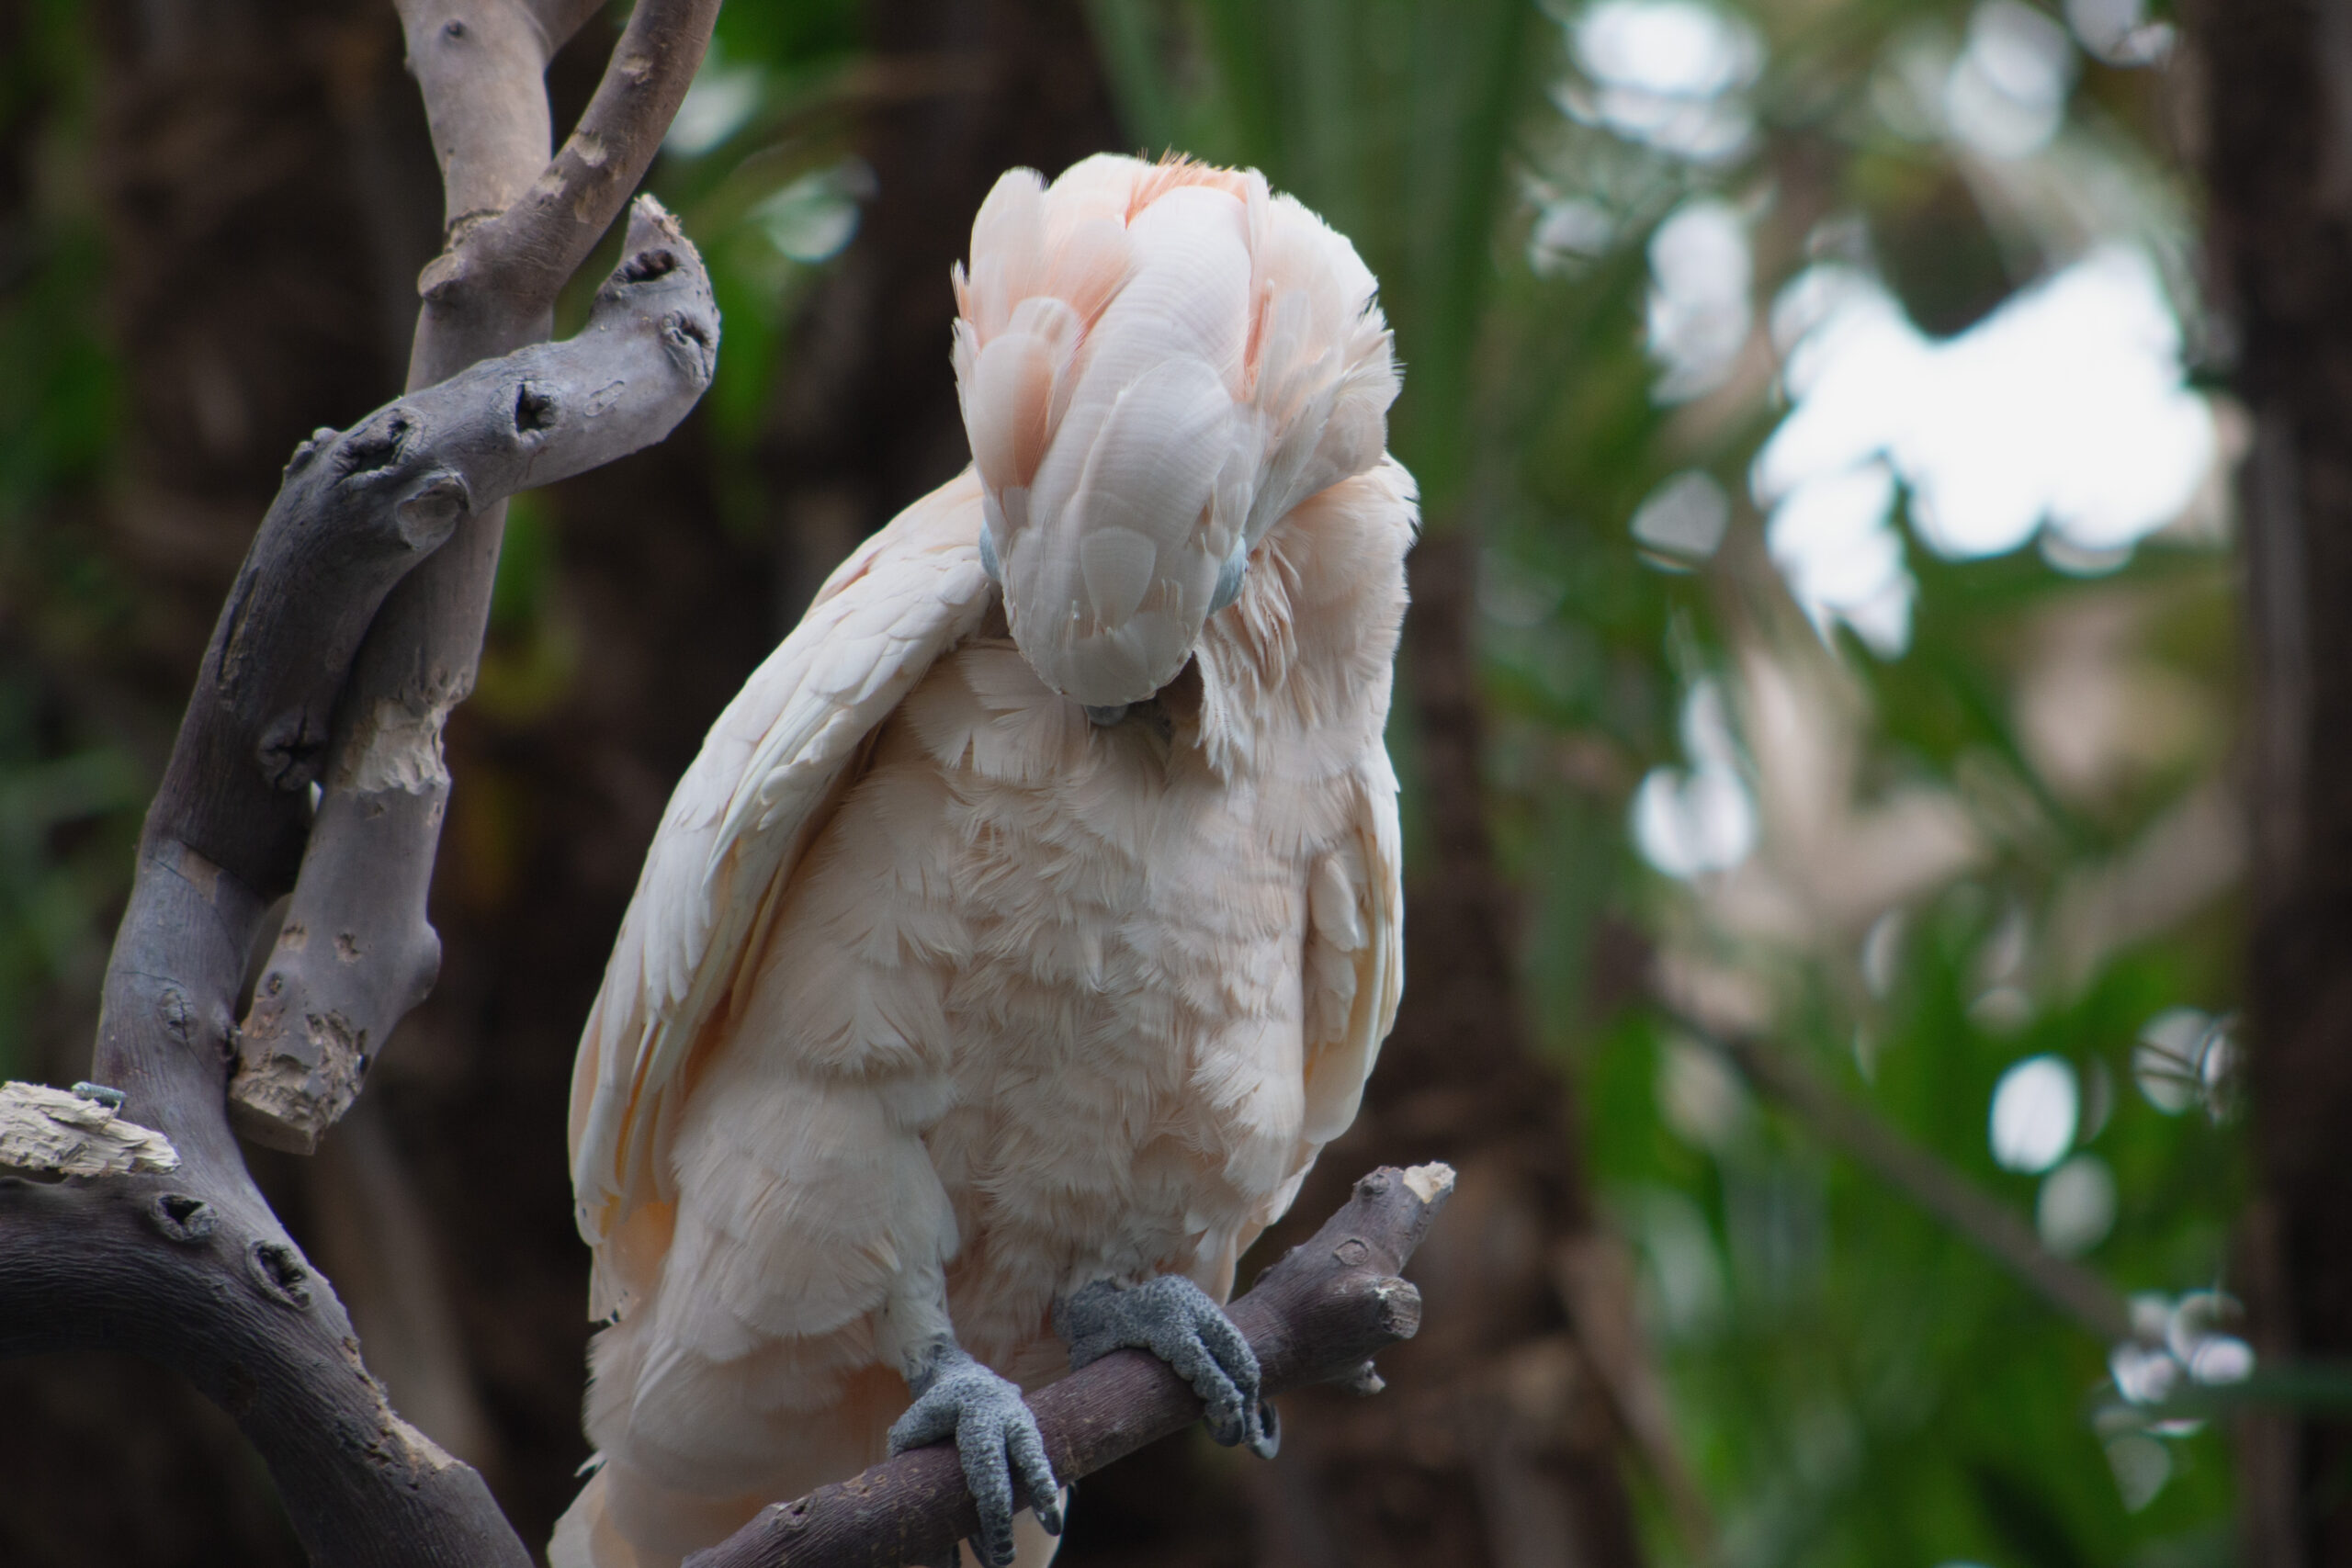 Kramer, a Moluccan Cockatoo, at the Bloedel Conservatory, March 2019